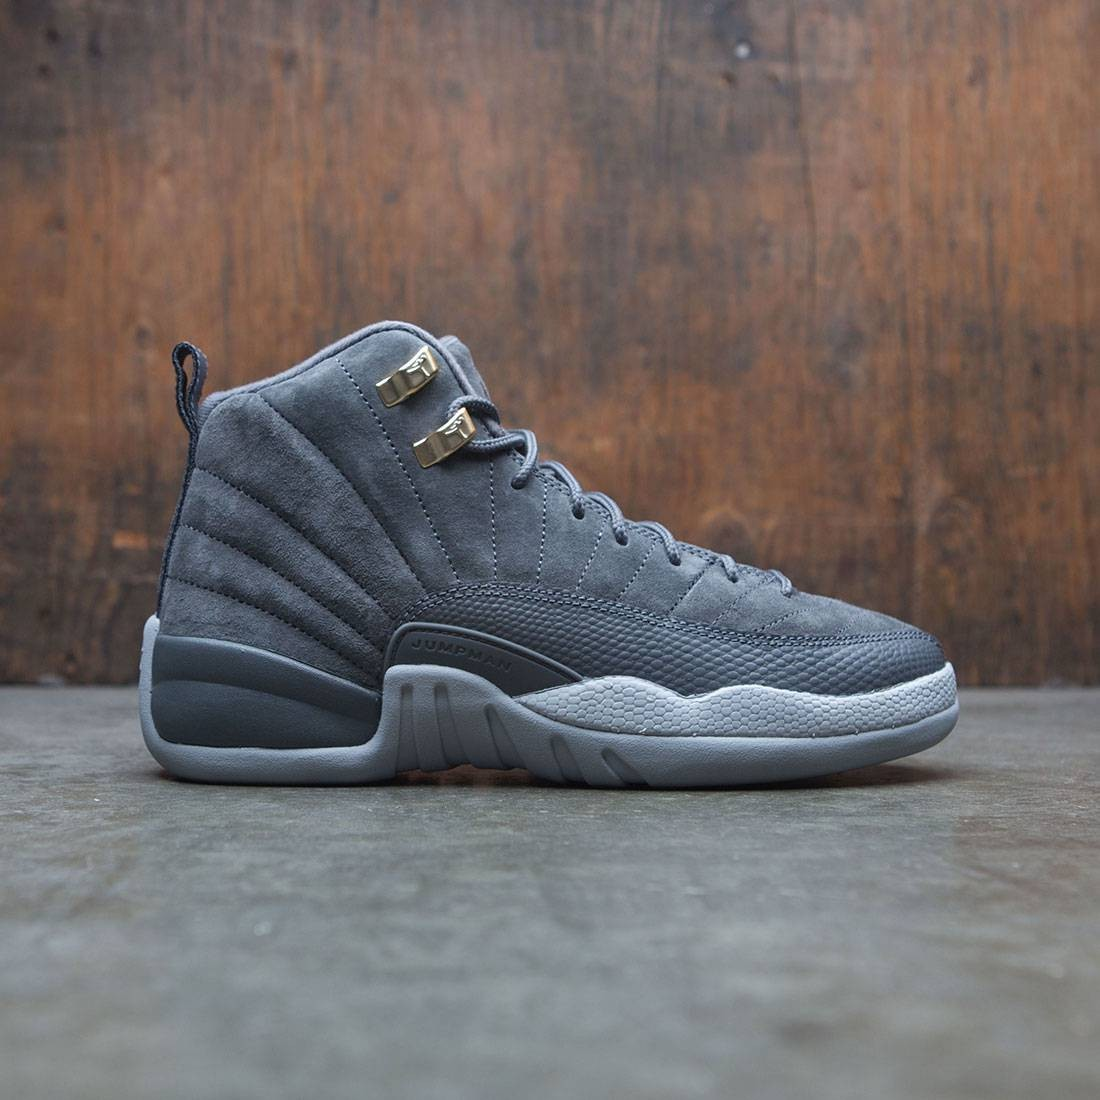 timeless design 7b85e 01aa0 Air Jordan 12 Retro (GS) Big Kids (dark grey / dark grey-wolf grey)